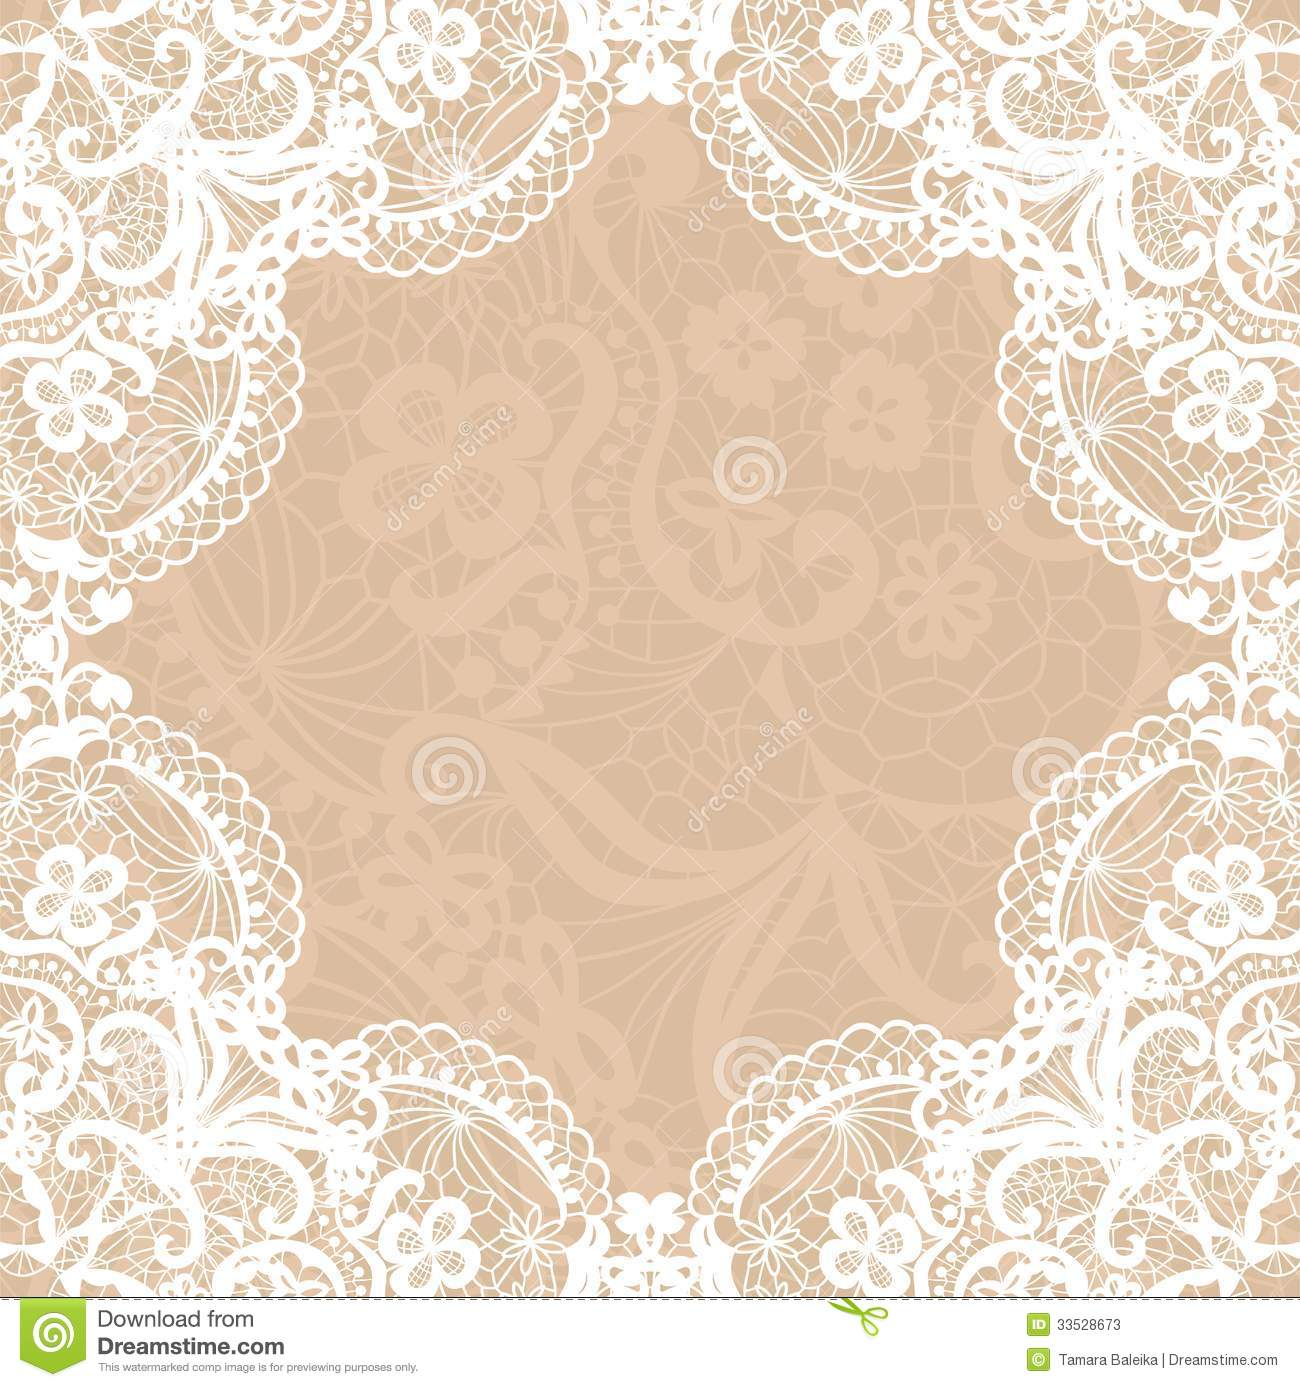 Vintage Lace Invitation Card  Stock Vector